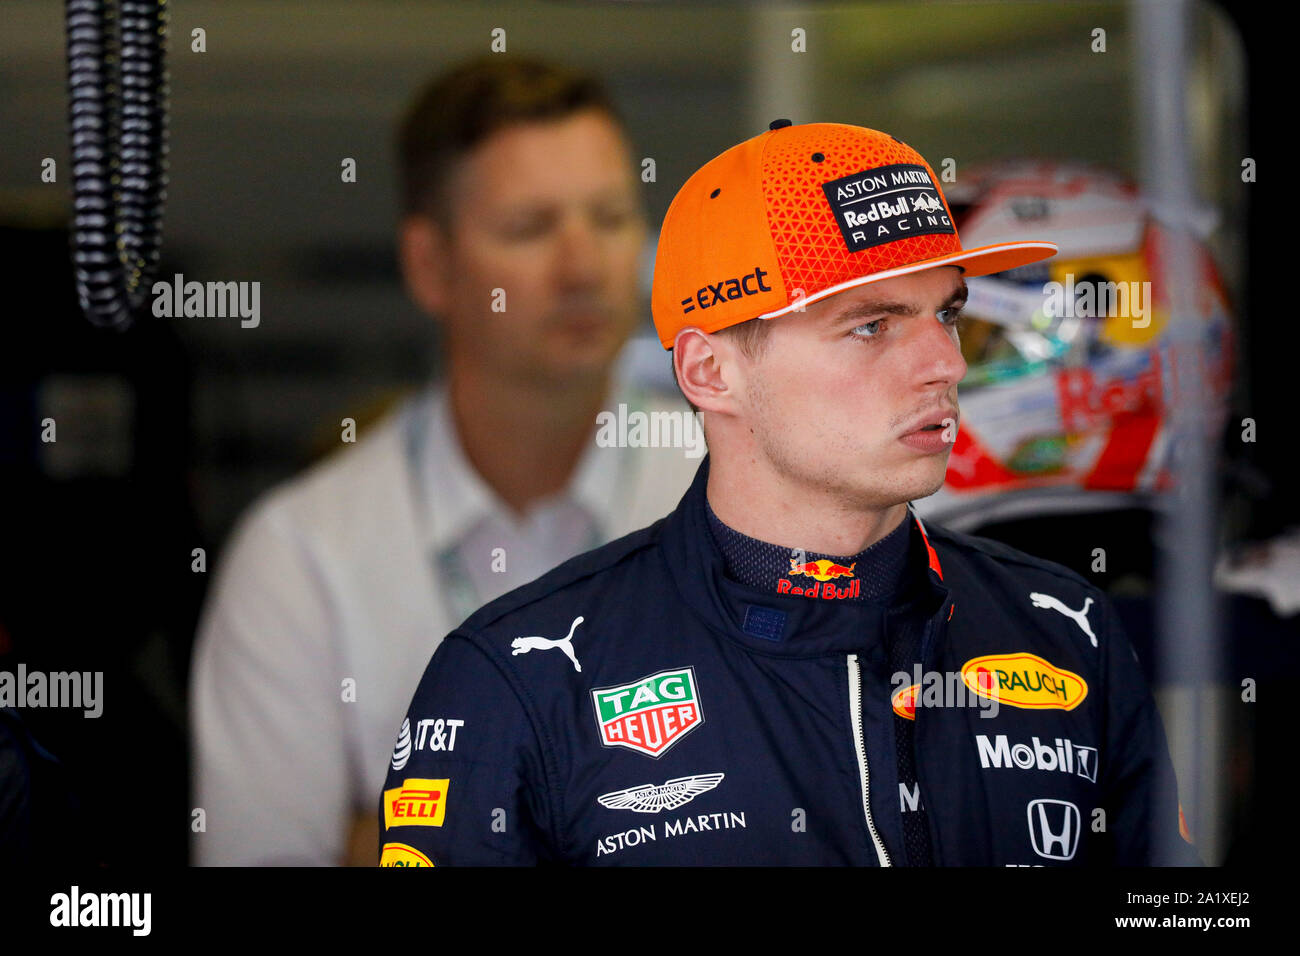 Max Verstappen Of Aston Martin Red Bull Racing At The Formula 1 Italian Grand Prix At Monza Eni Circuit In Monza Italy Stock Photo Alamy